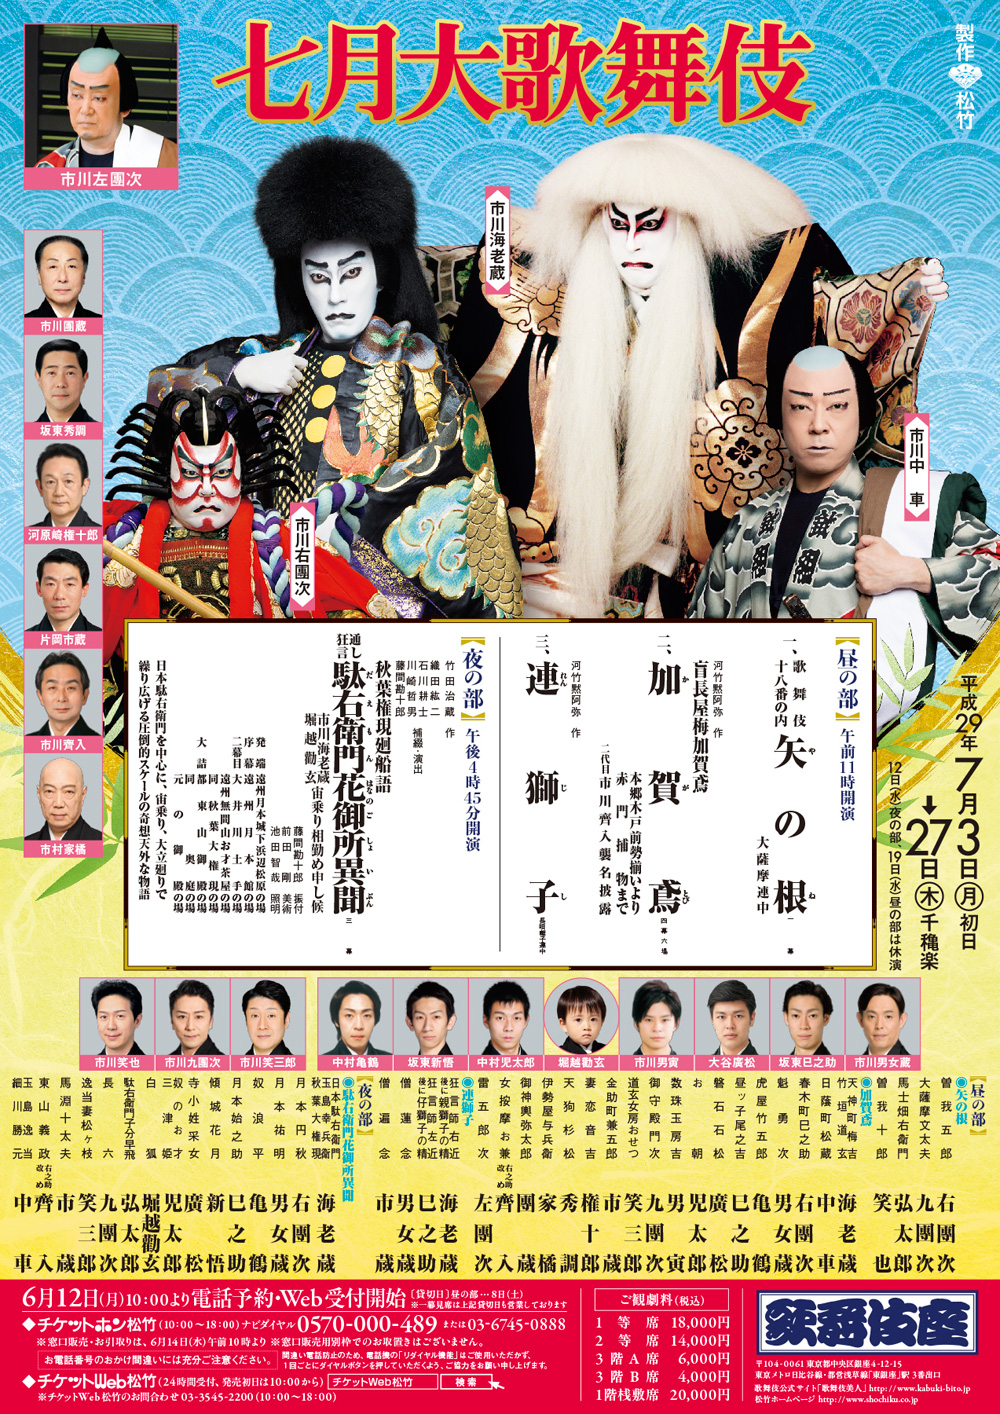 July at the Kabukiza Theatre